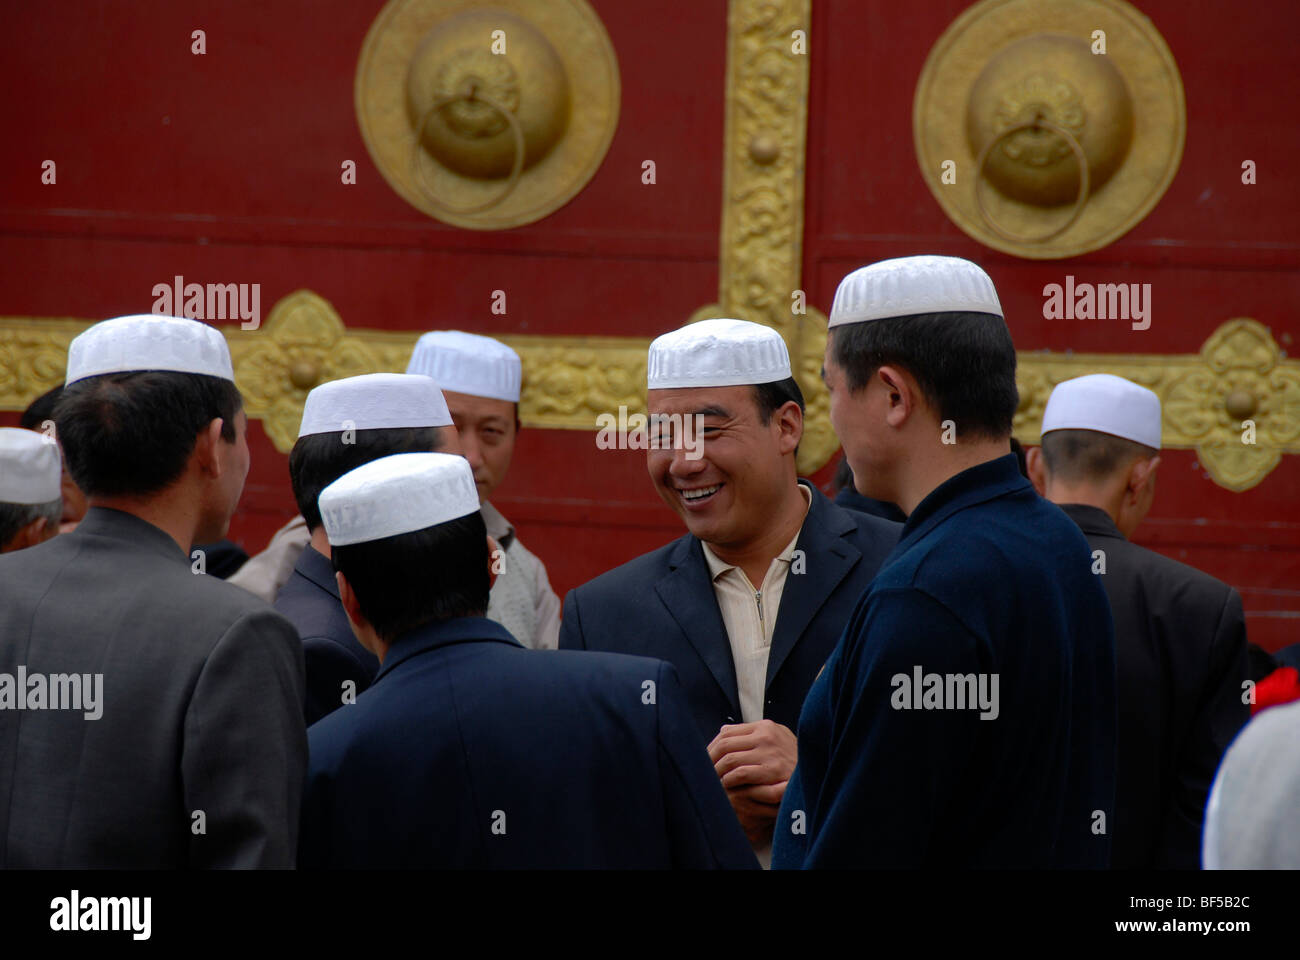 Assembly of Hui-Chinese, Chinese Muslims, with white caps, historic town centre of Lhasa, Himalayas, Tibet Autonomous - Stock Image